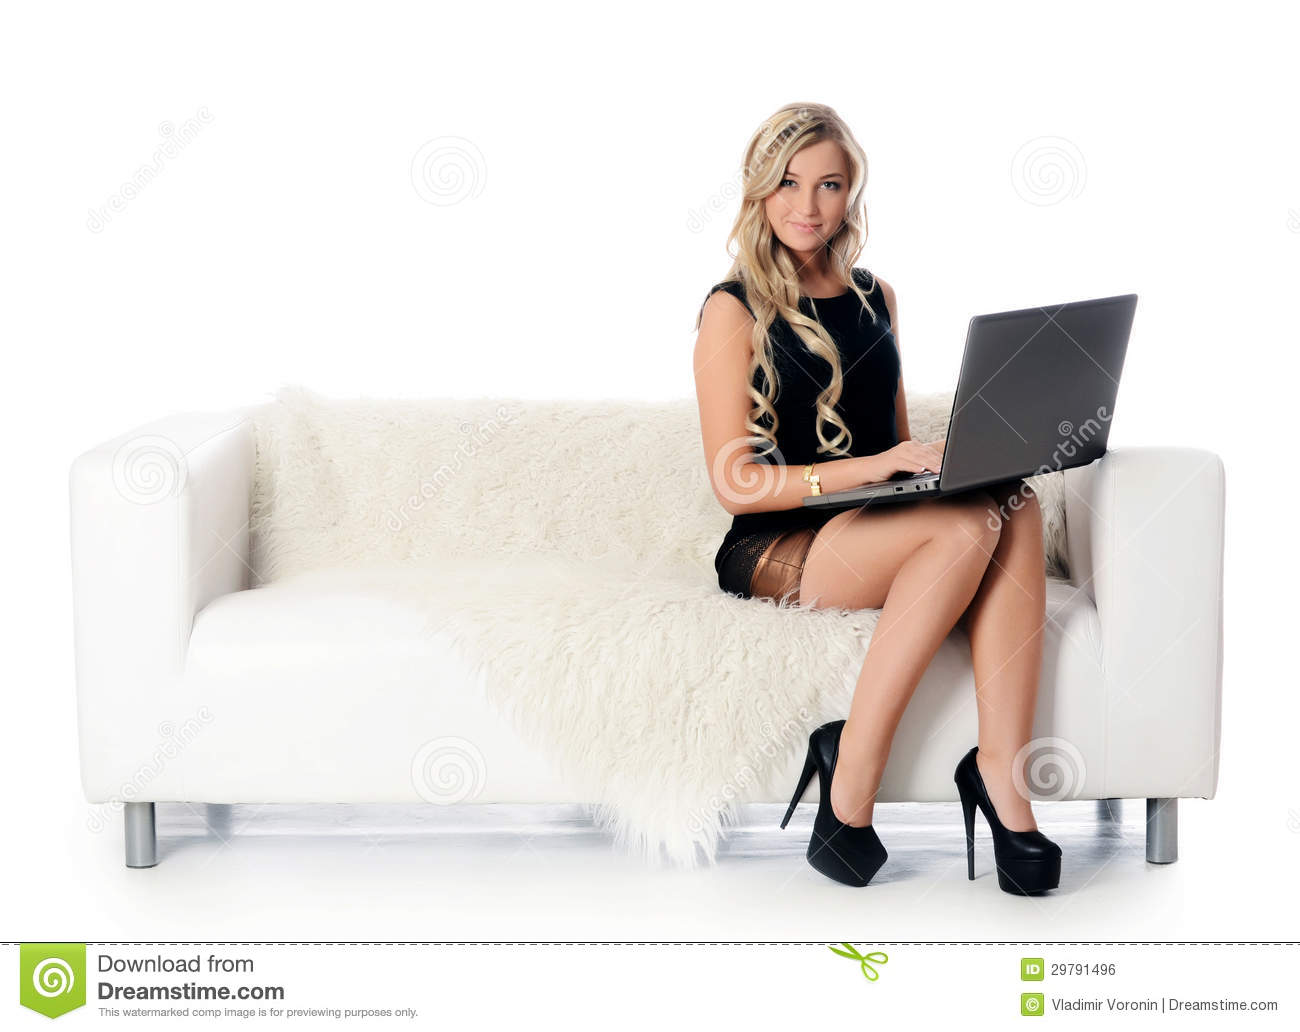 The Elegant Woman On A White Sofa With The Laptop